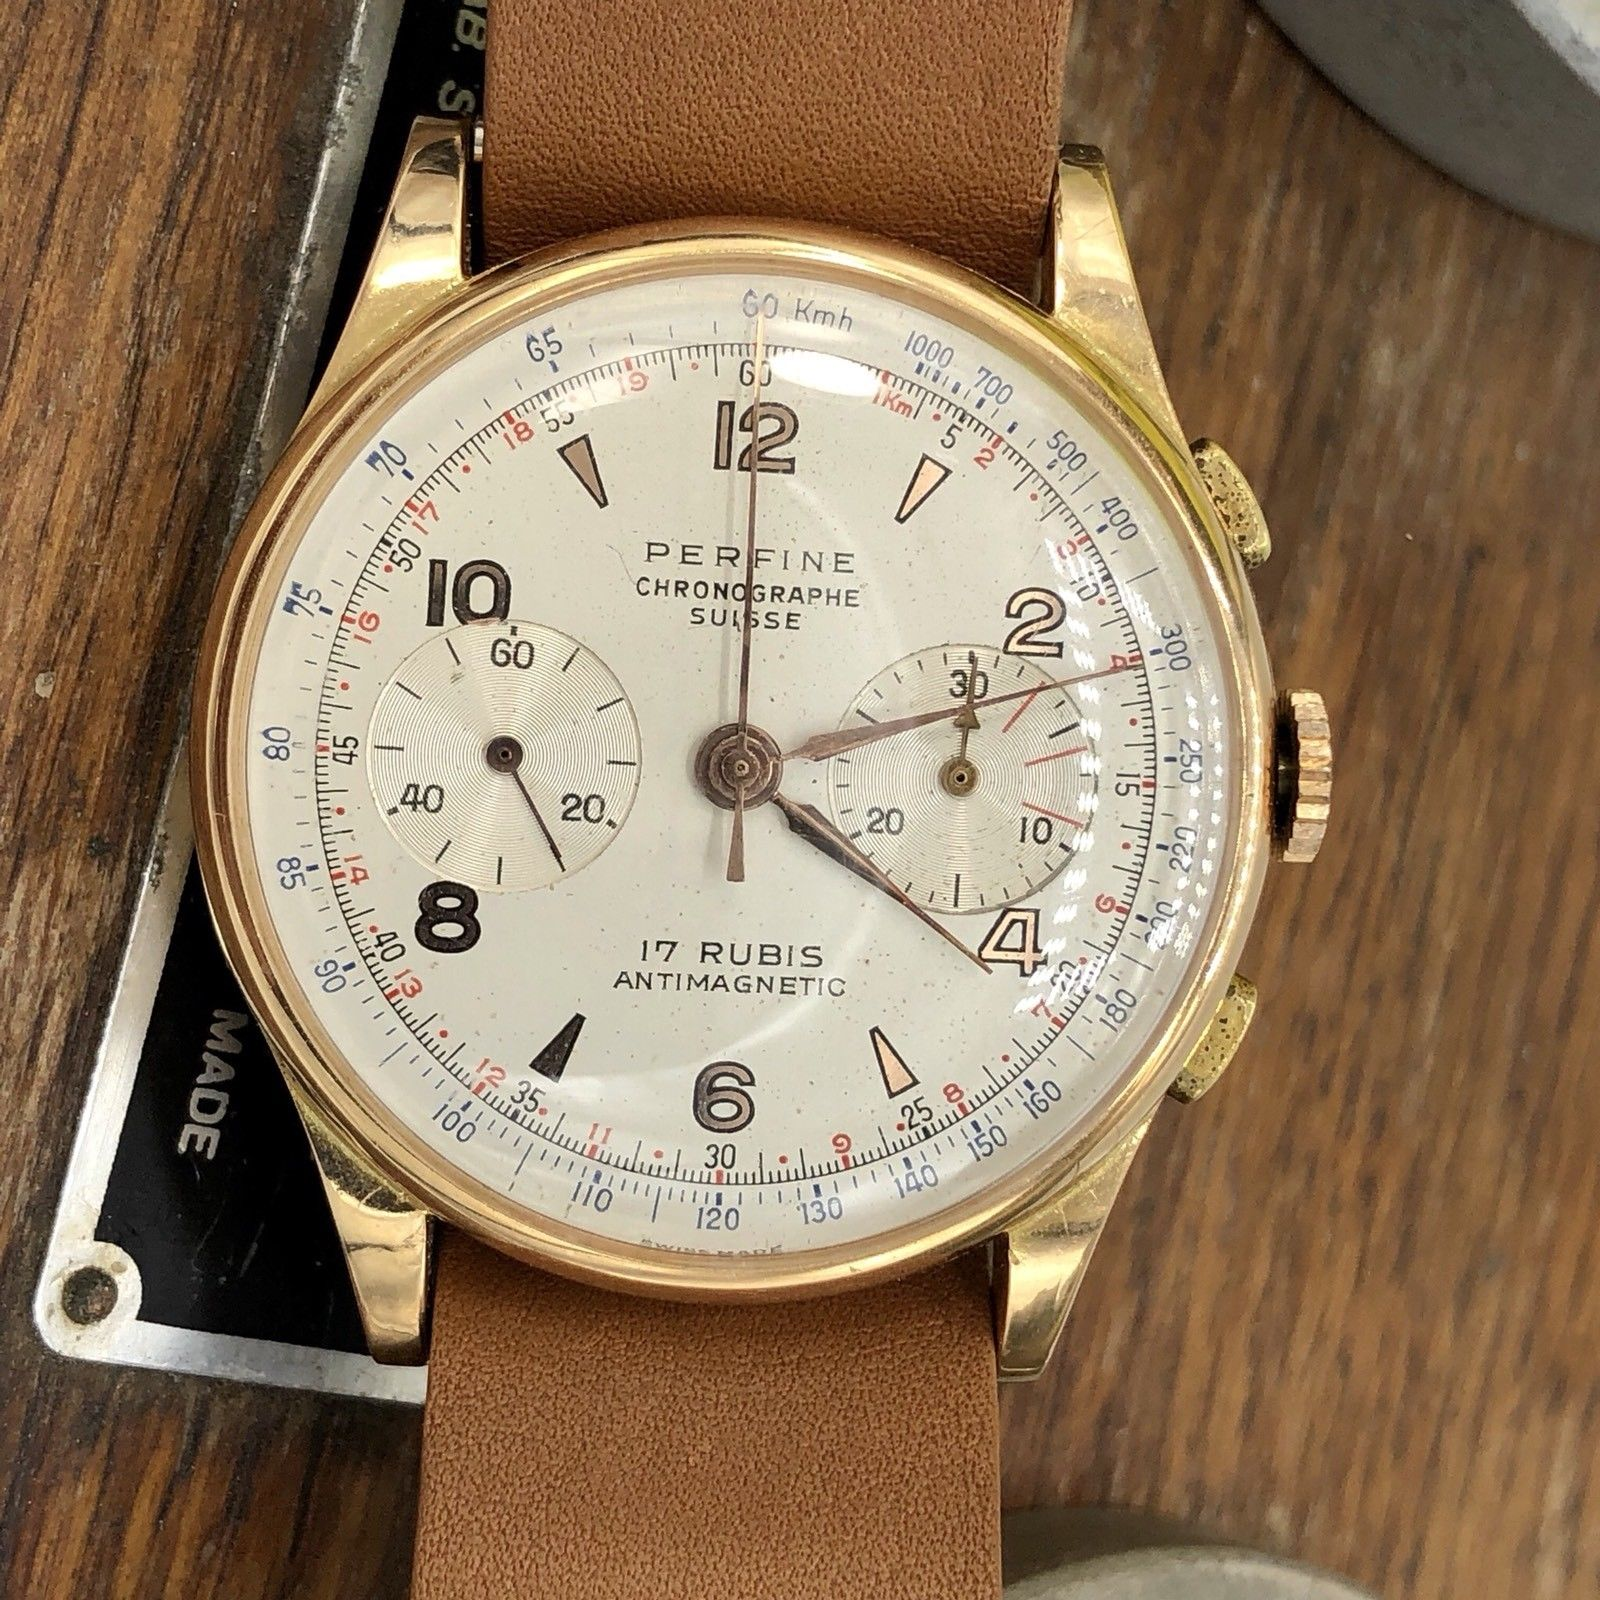 Rare vintage perfine chronograph 18k rose gold swiss made watch 38mm awadwatches for Watches 38mm